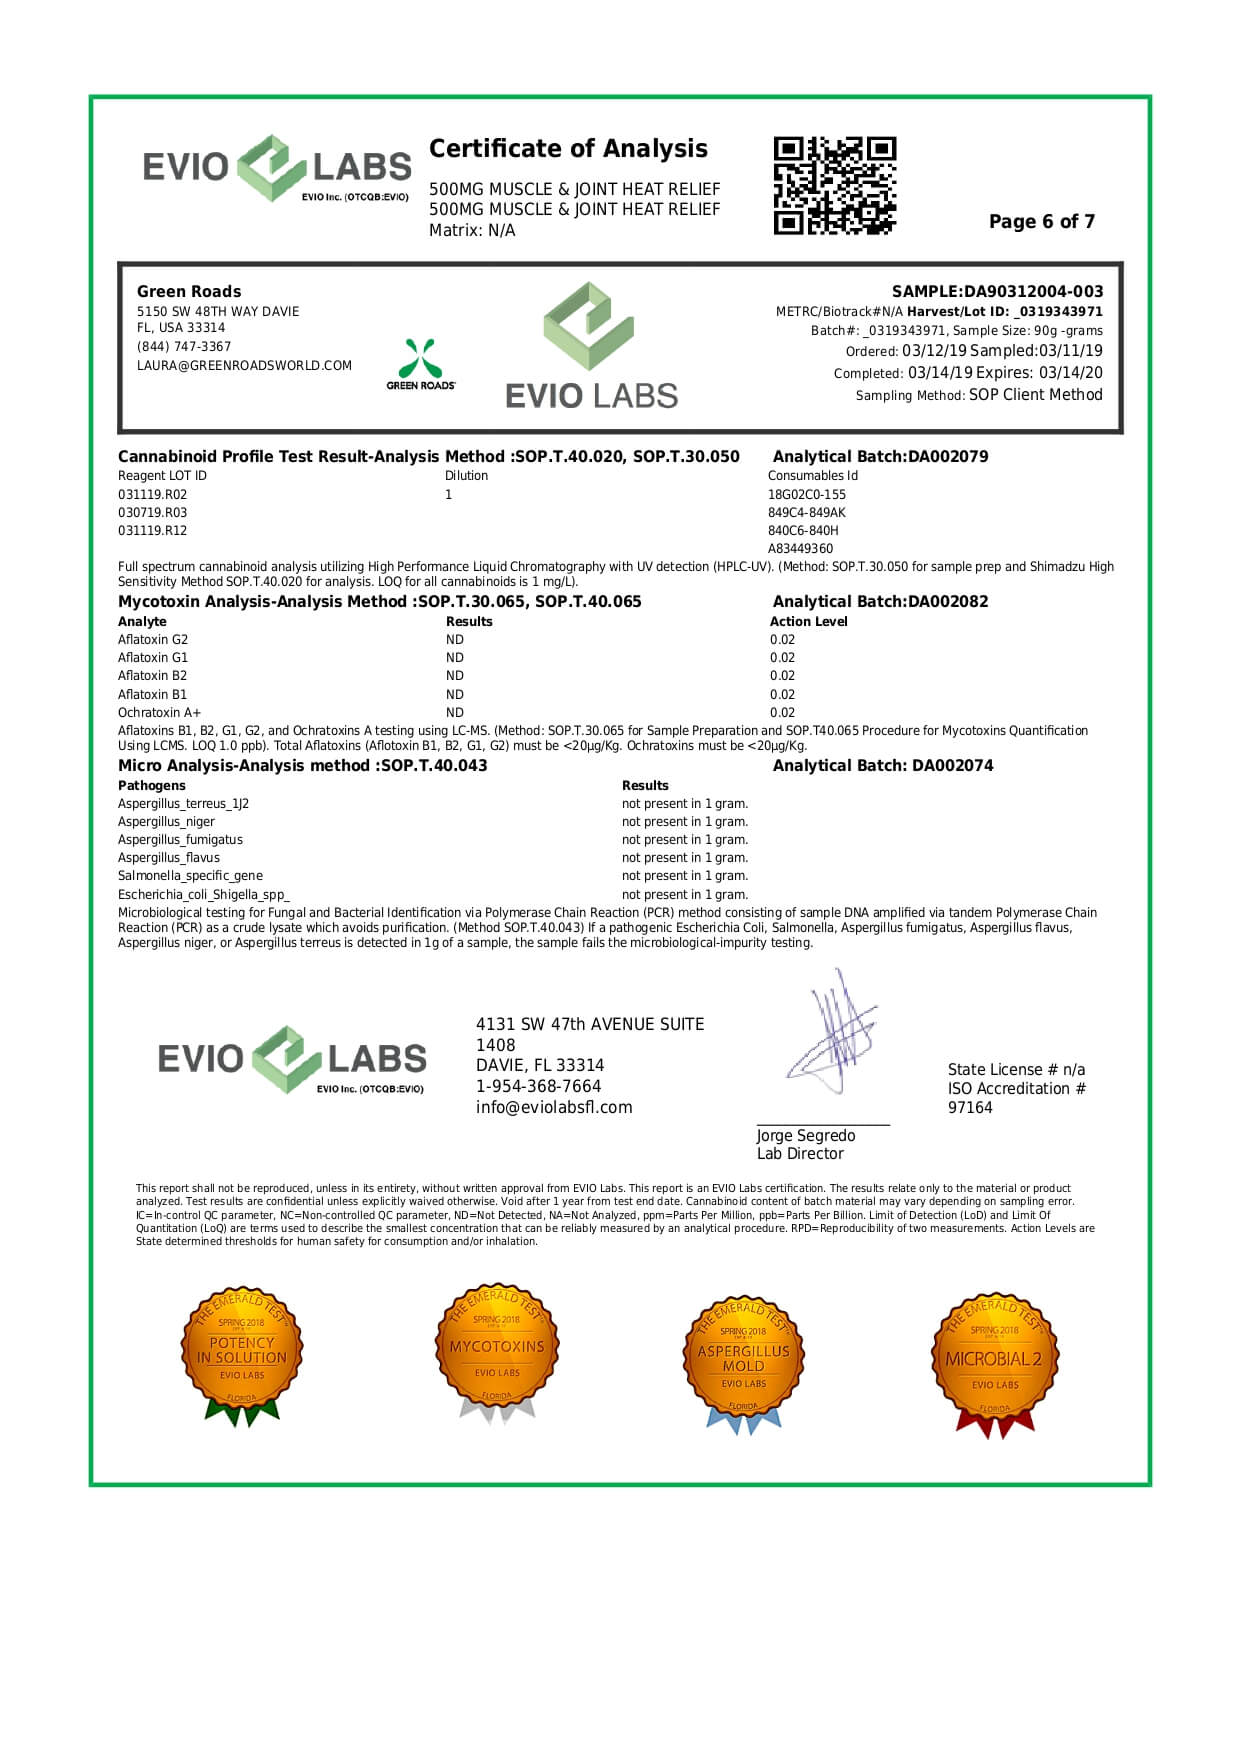 Green Roads CBD Topical Muscle & Joint Heat Relief Roll-On 500mg Lab Report